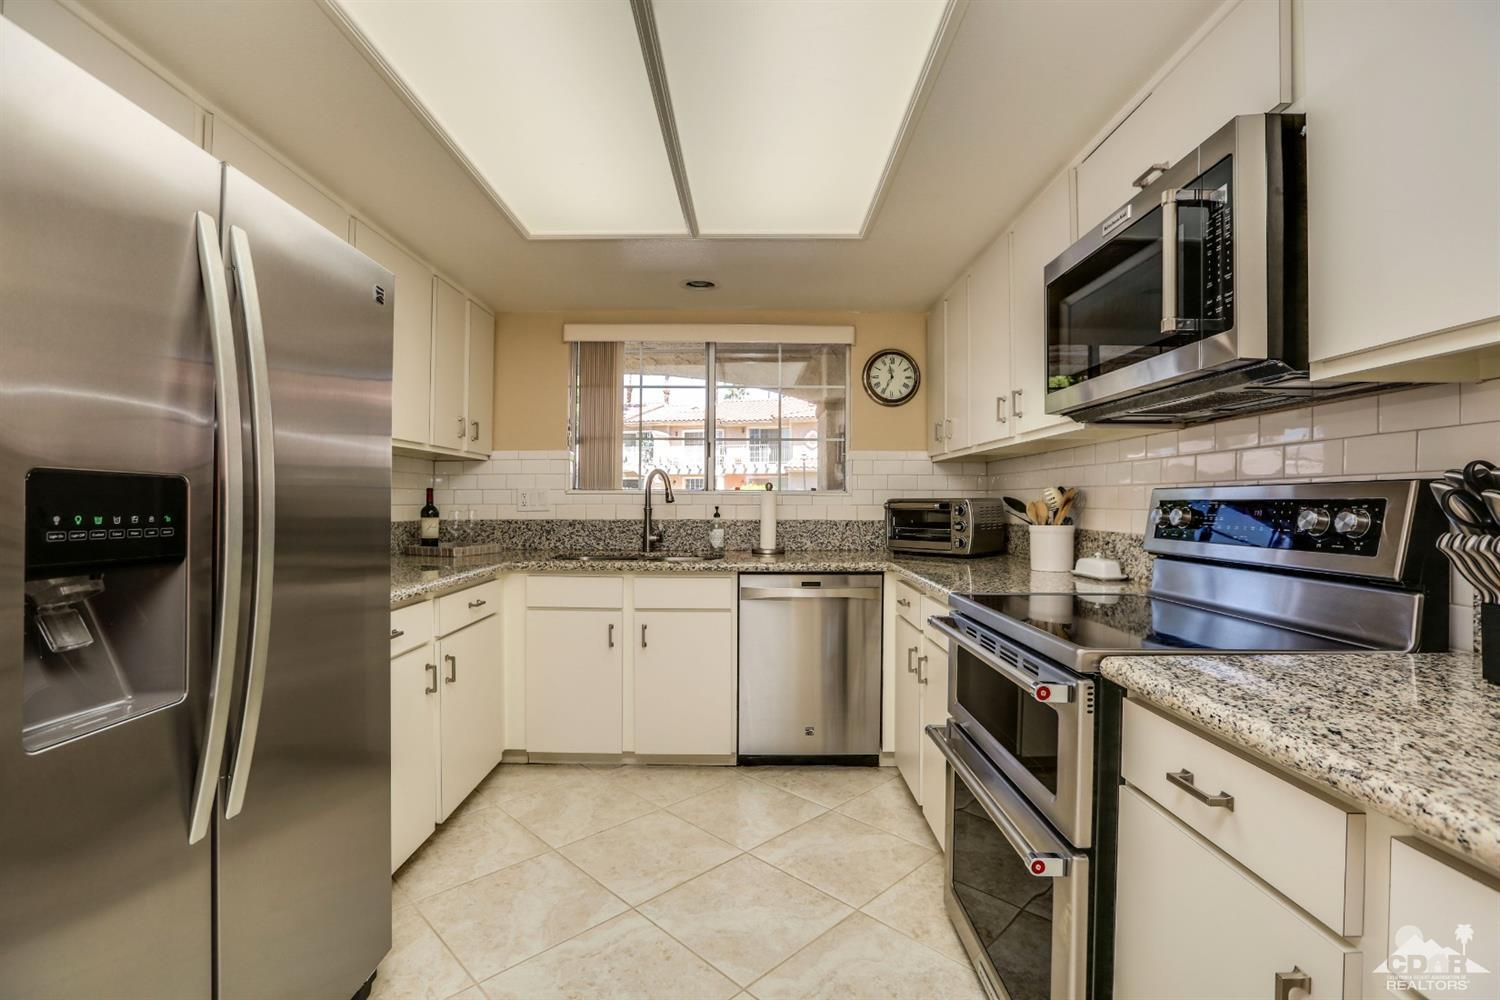 500 S Farrell Drive, Palm Springs, California 92264, 2 Bedrooms Bedrooms, ,2 BathroomsBathrooms,Residential,Sold,500 S Farrell Drive,218026548